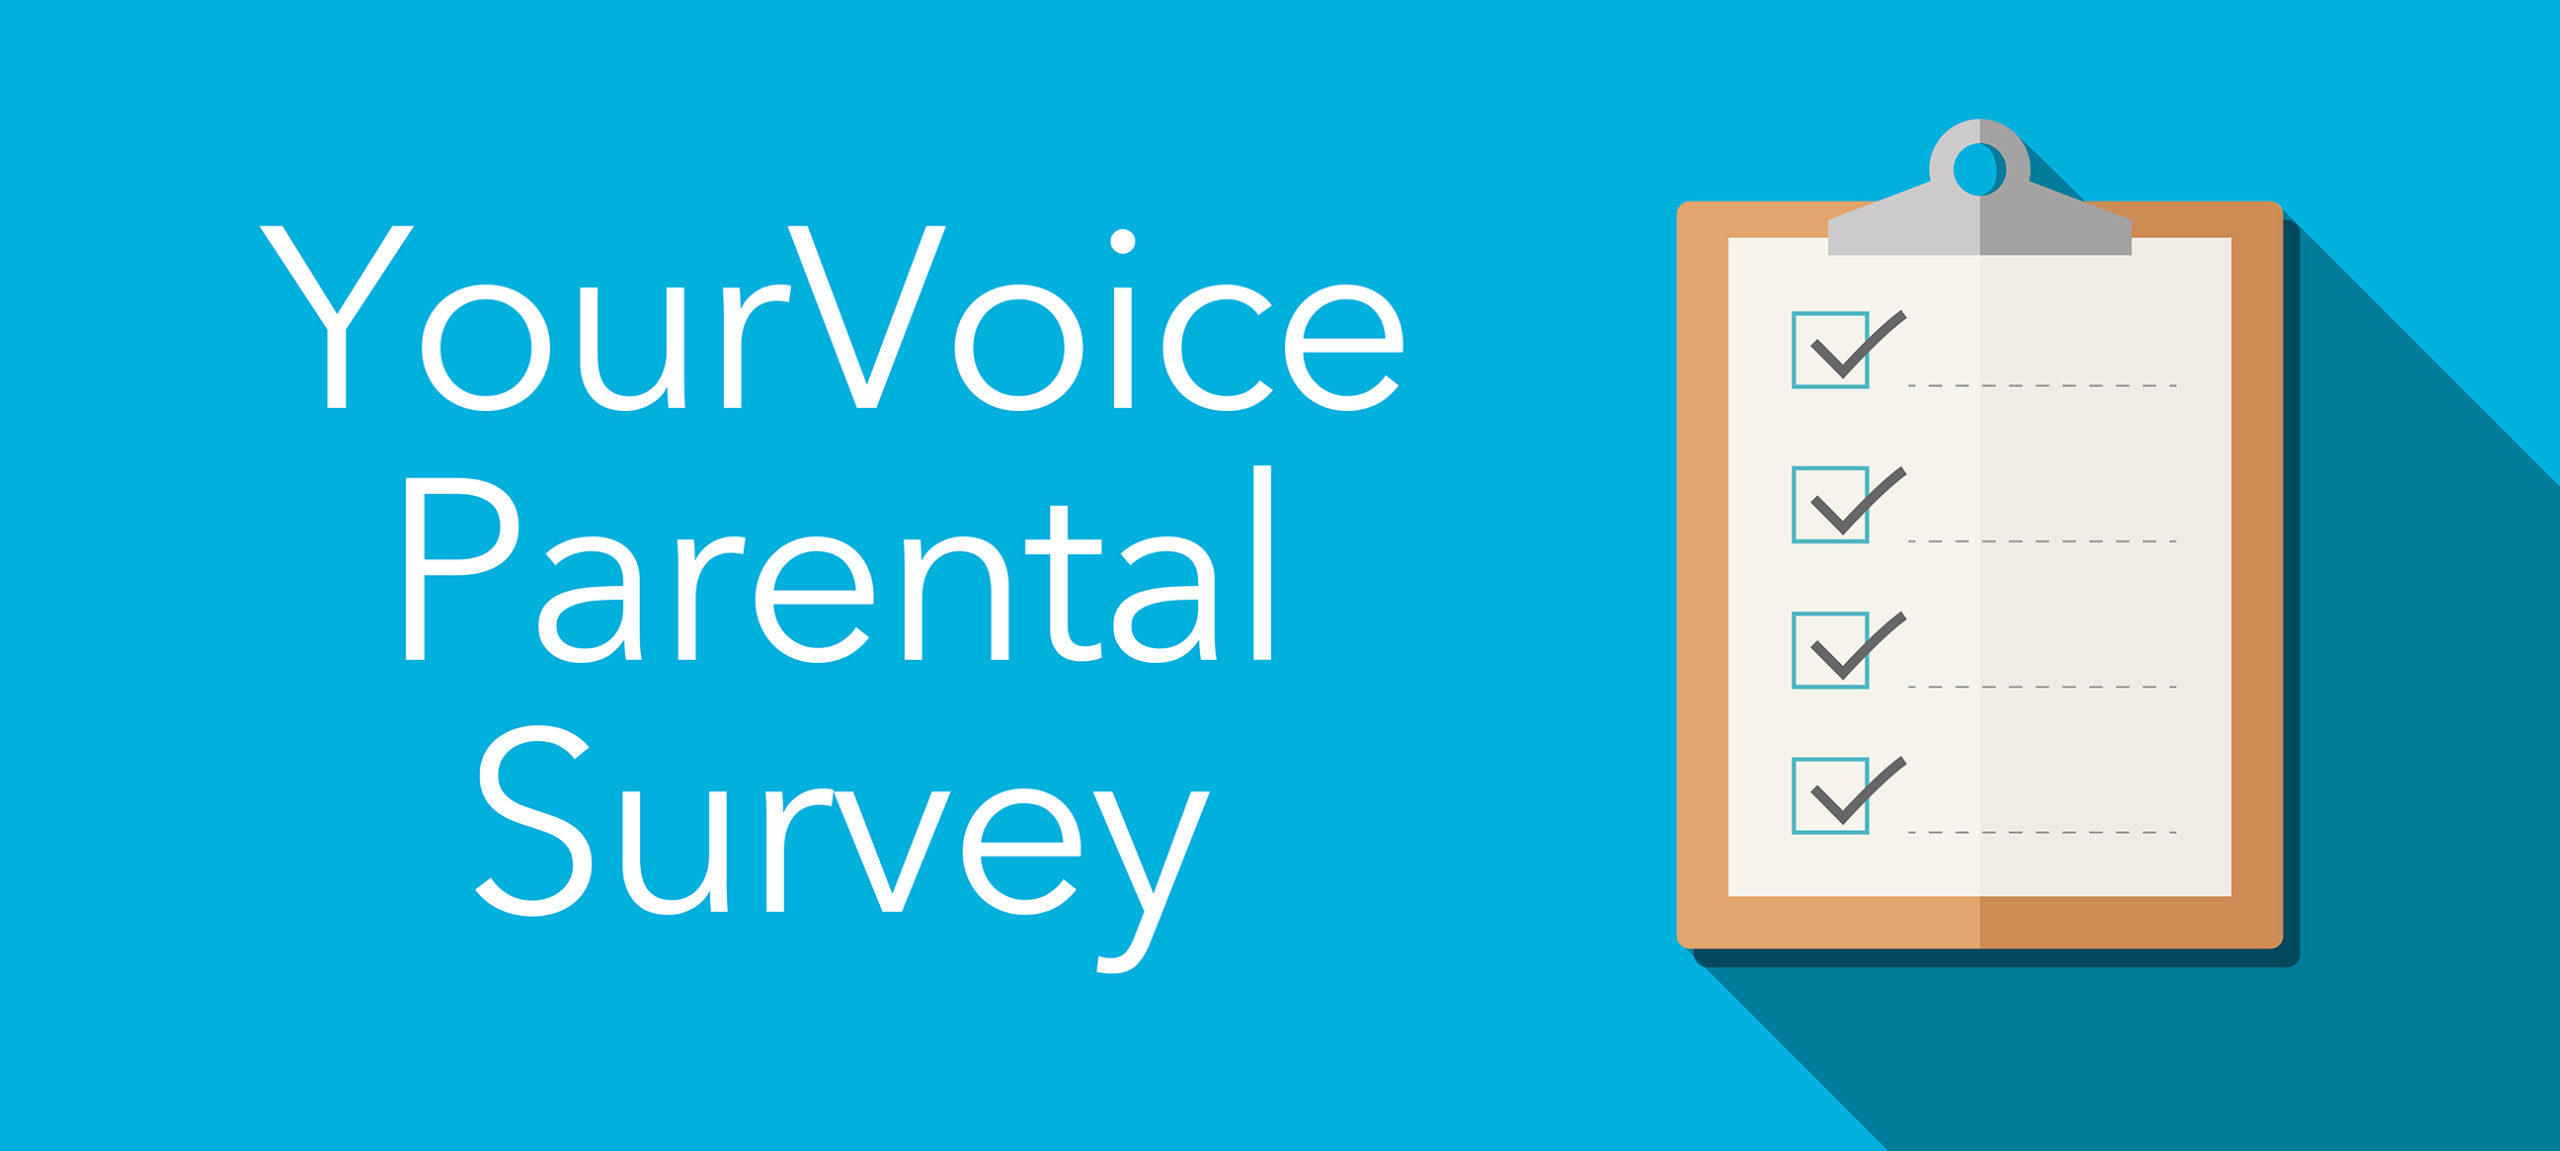 YourVoice Parental Survey